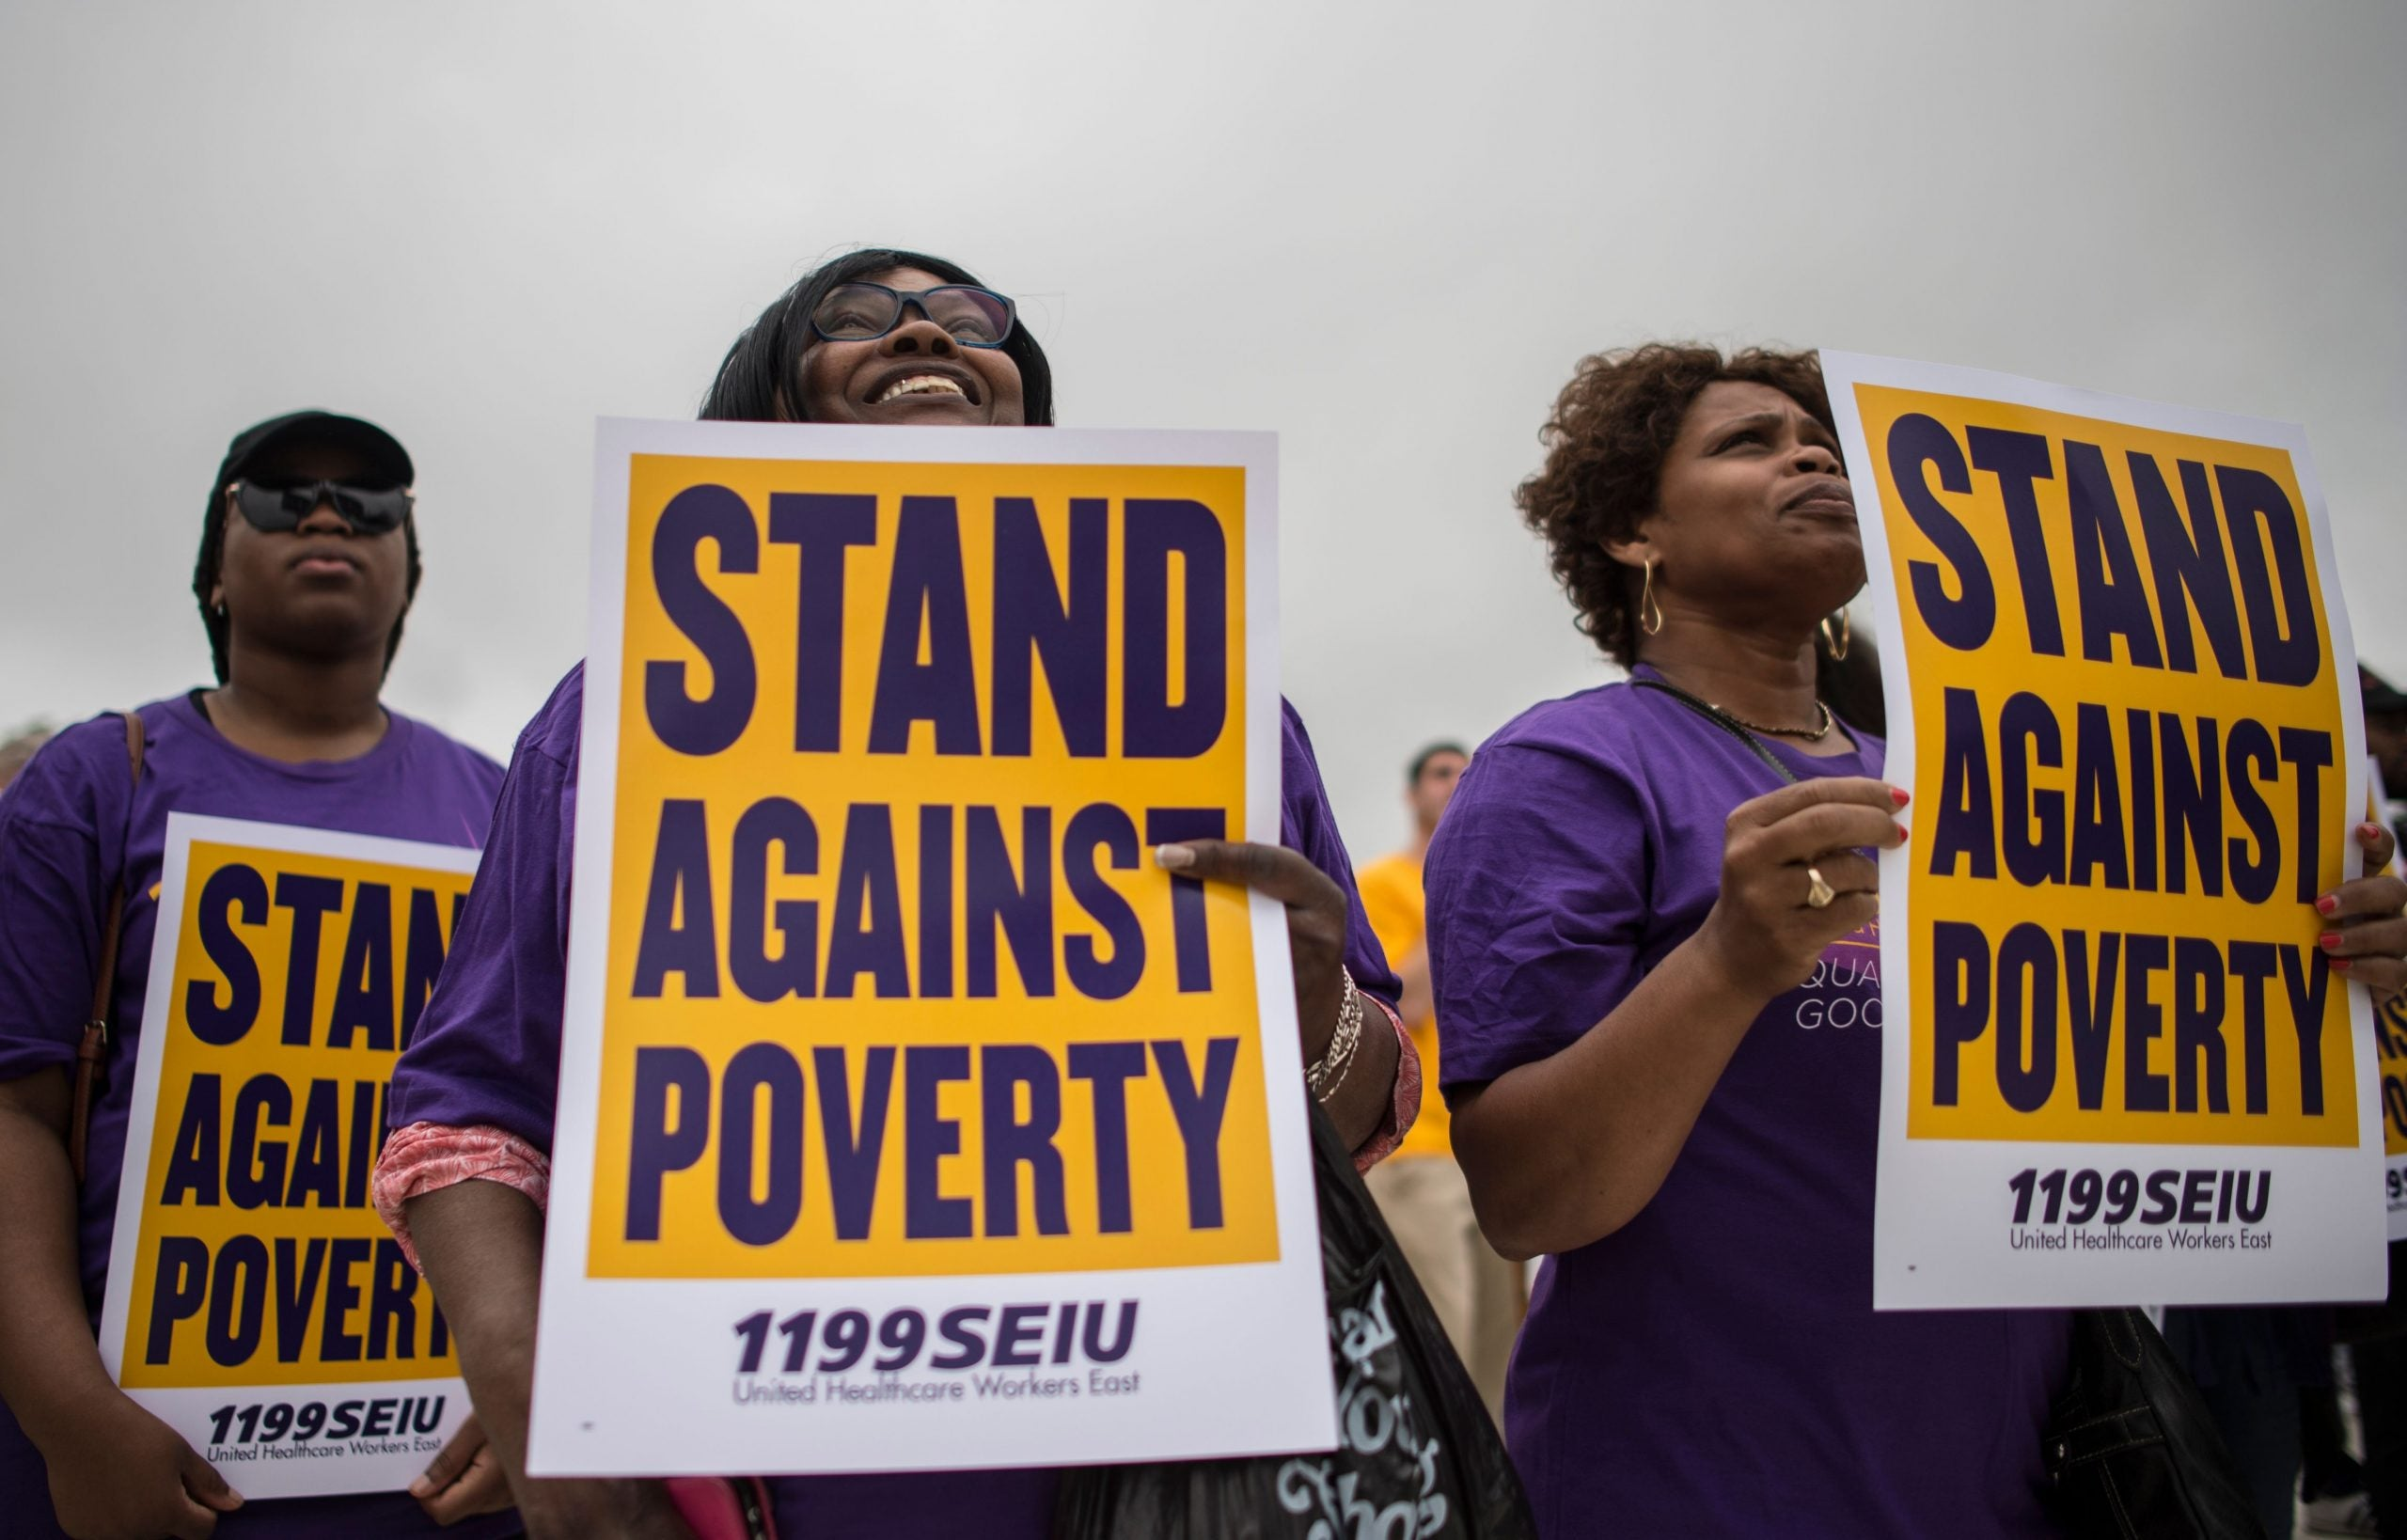 protestors at Poor People's Campaign rally hold signs addressing poverty